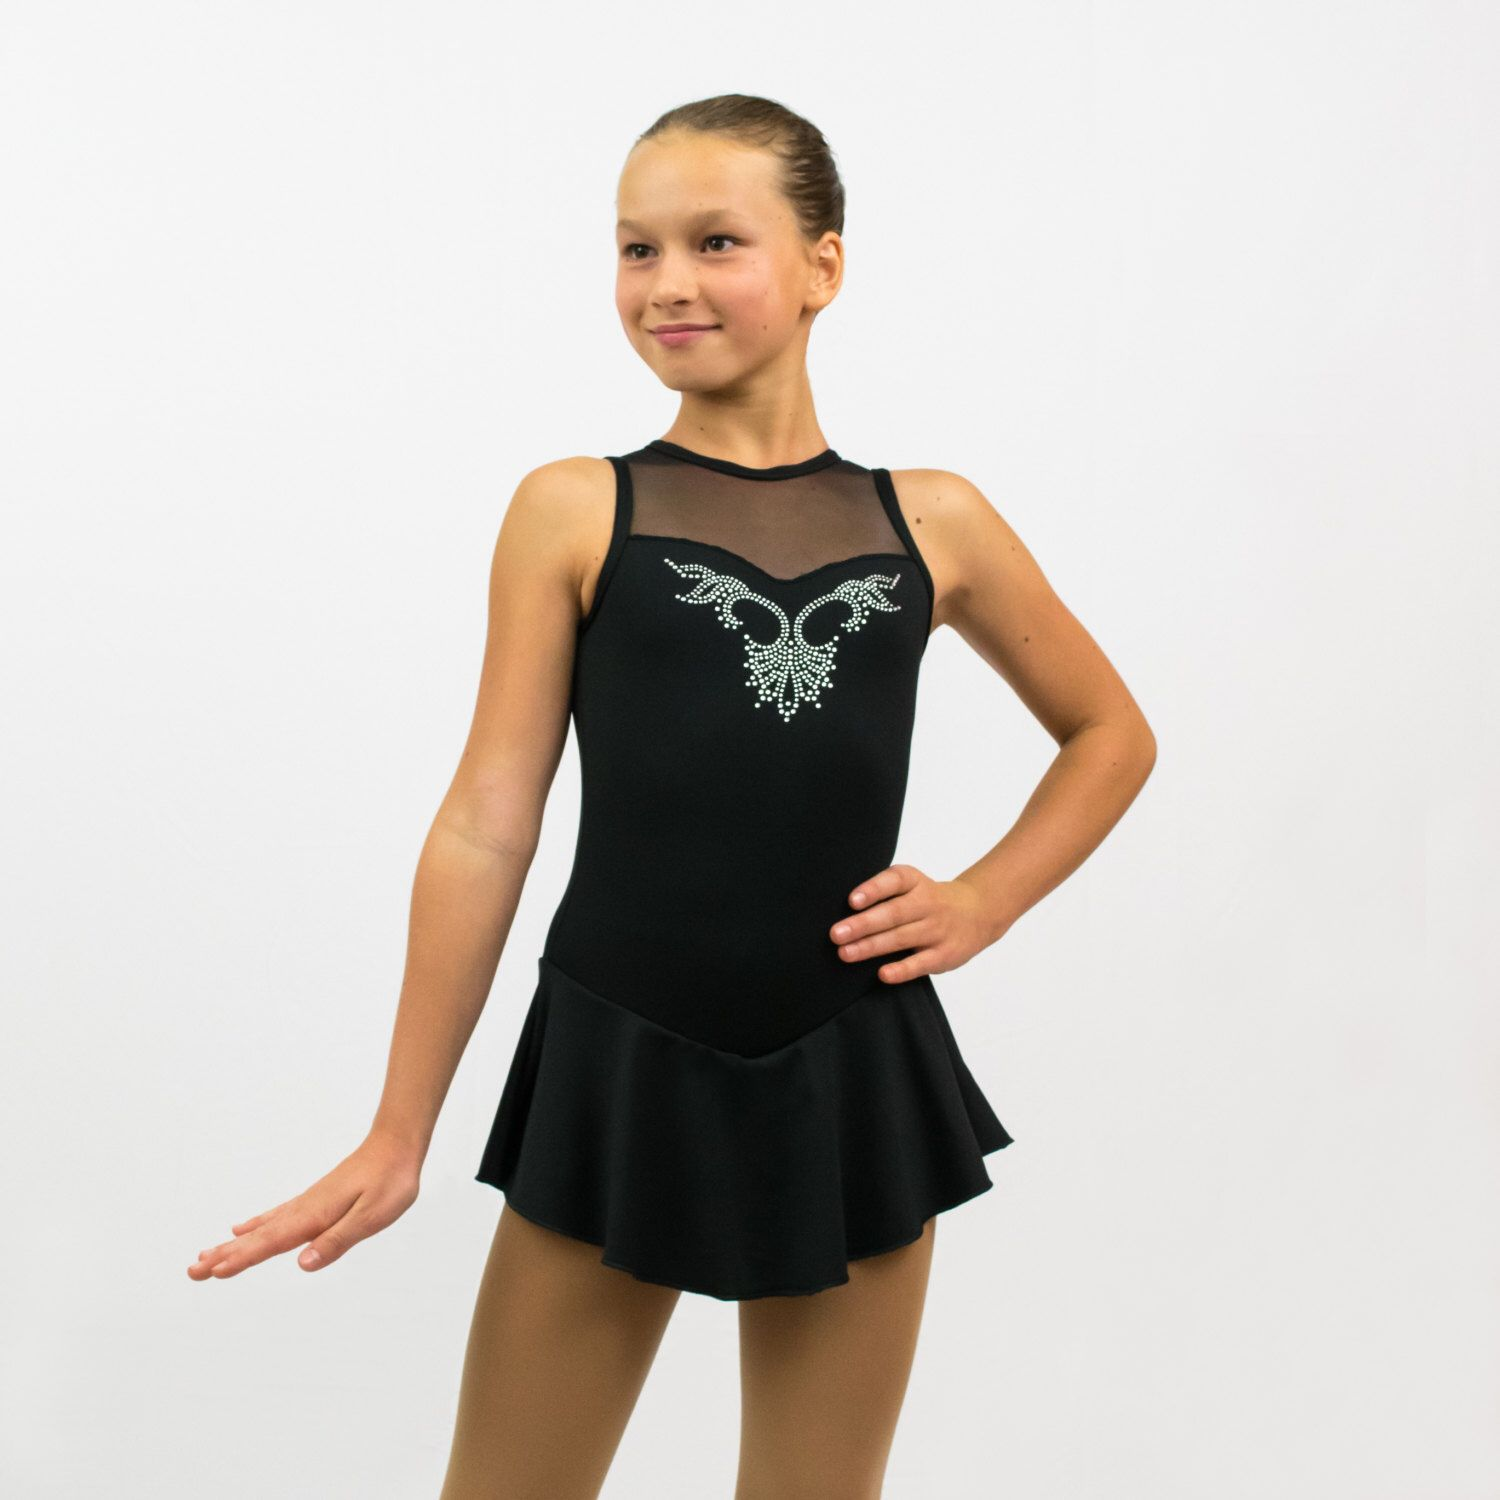 Ice Skating Figure Skating Black Dress size INTERMEDIATE CHILD(7-8 years) with crystals applique by PerformingOutfits on Etsy https://www.etsy.com/ca/listing/250679319/ice-skating-figure-skating-black-dress